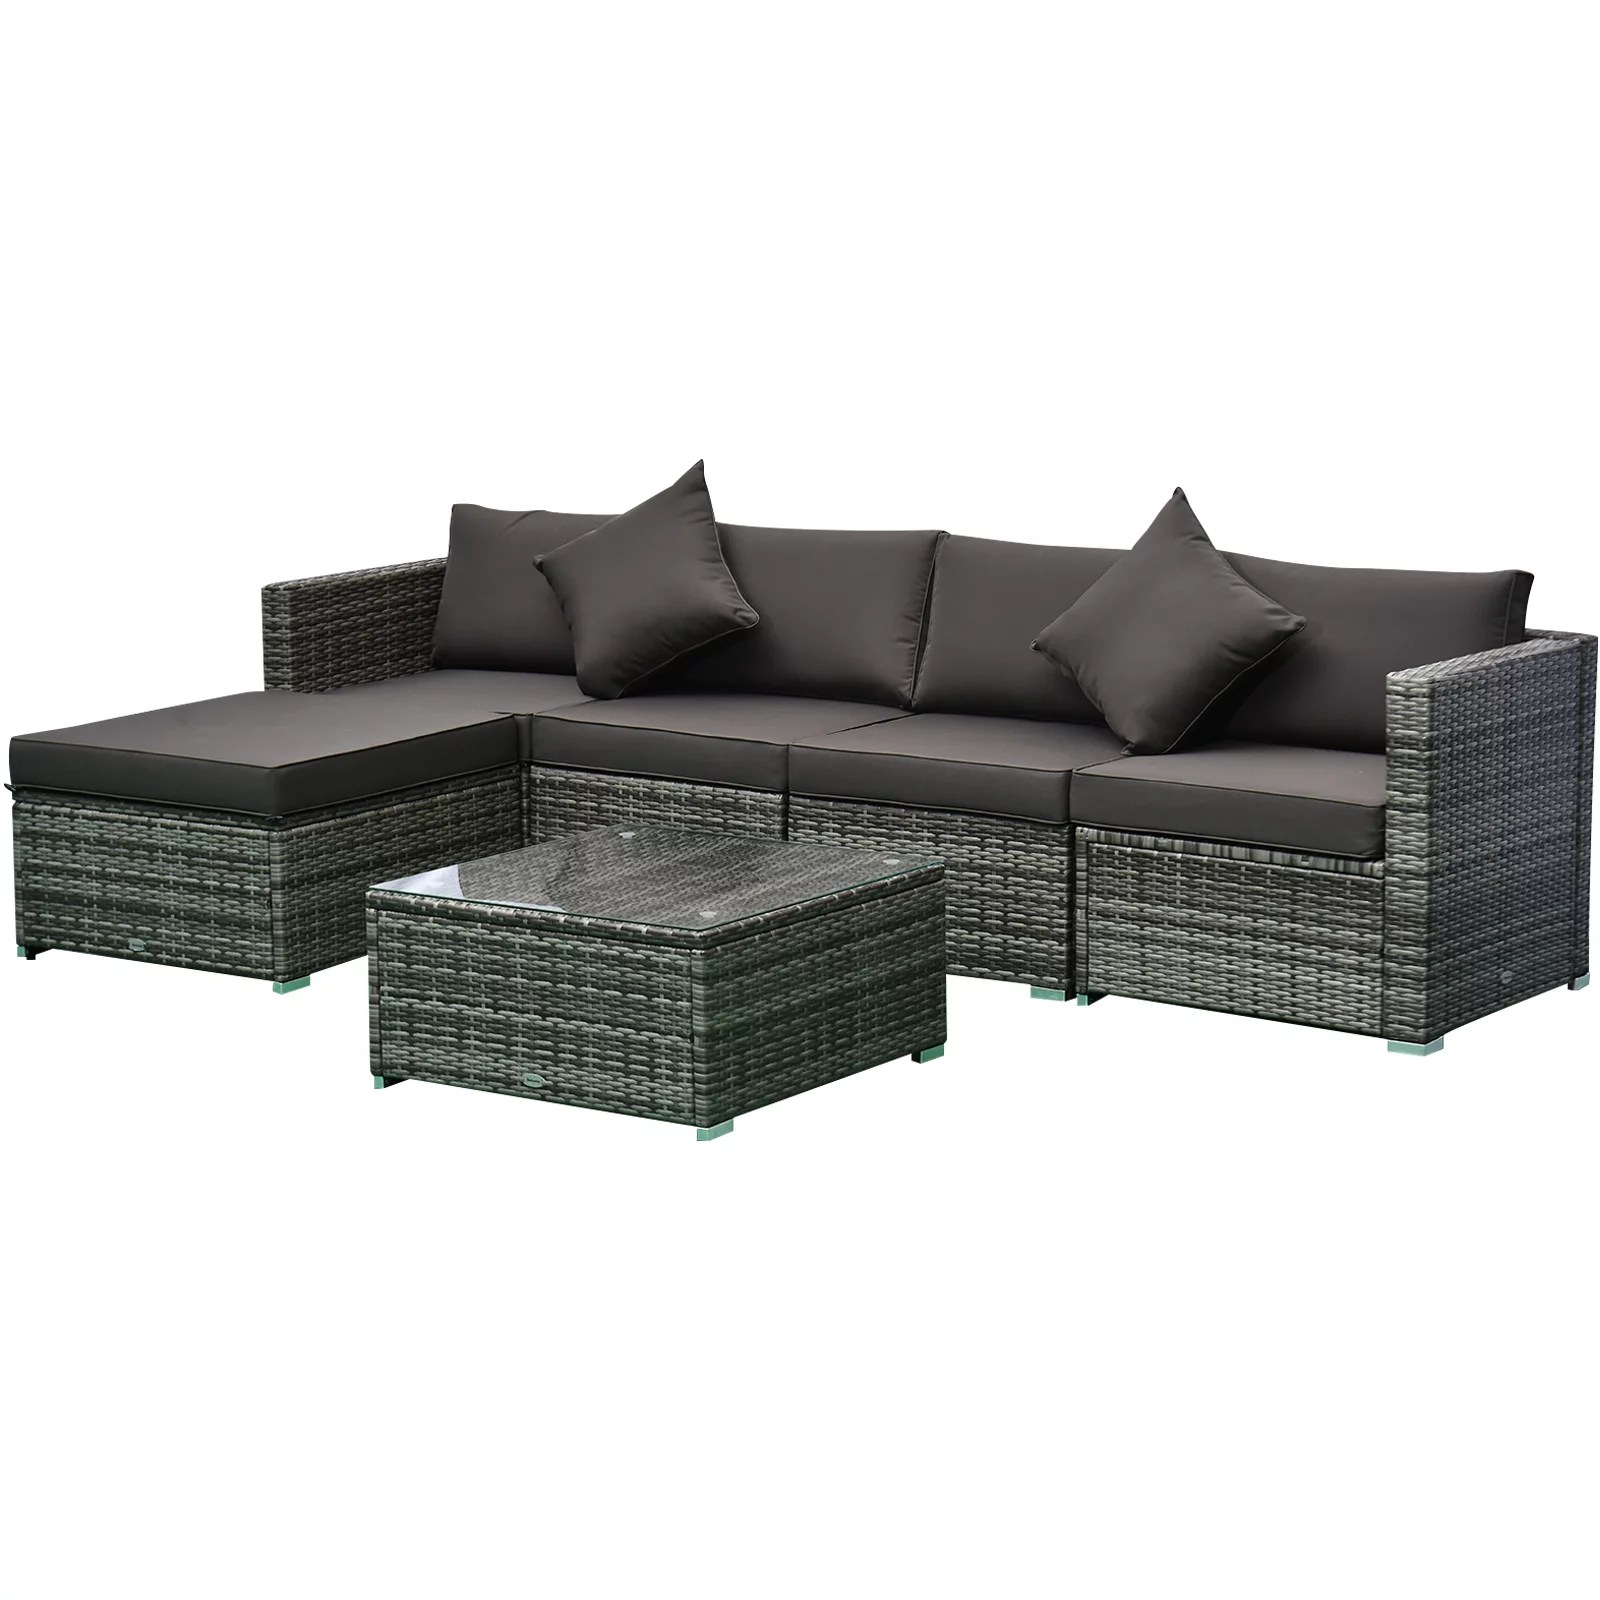 outsunny 6 piece outdoor patio rattan wicker furniture sofa set w cushions charcoal up to 395lbs